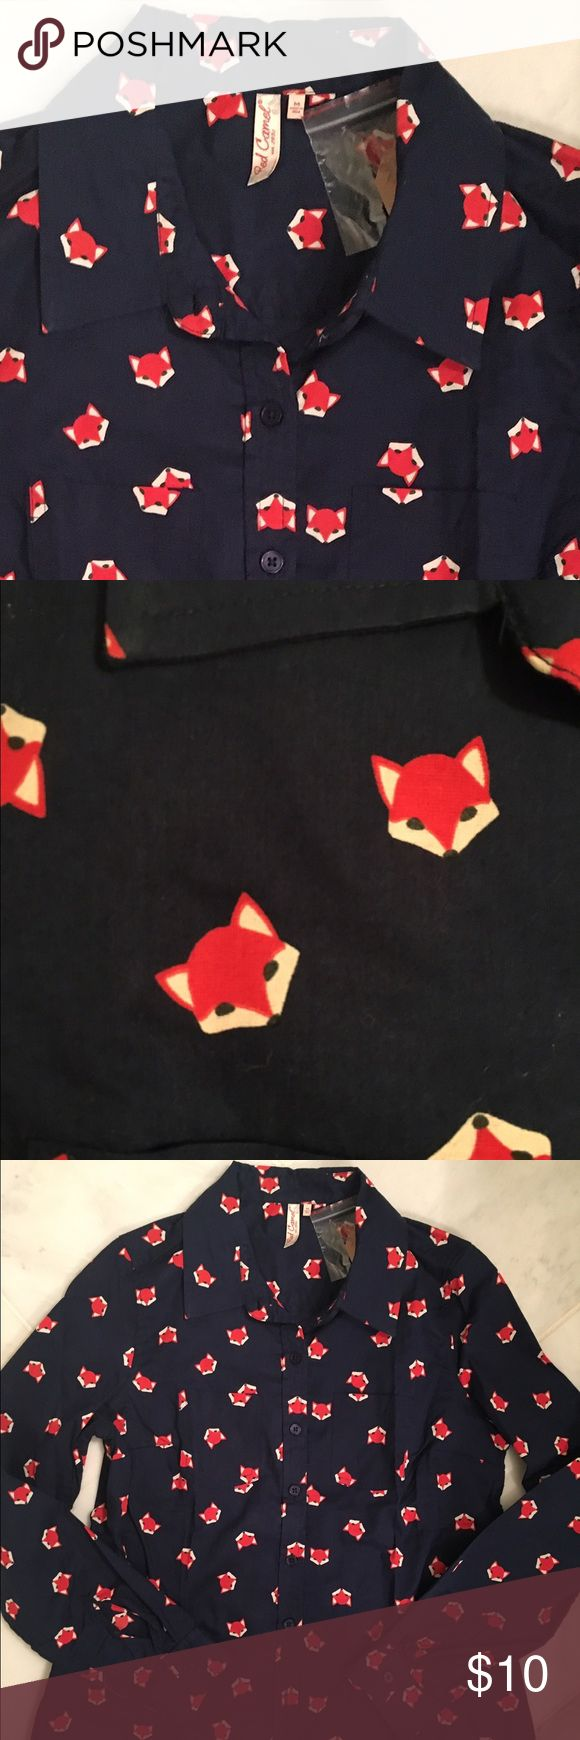 Little foxes collared shirt Red Camel little foxes collared shirt; size medium. Red Camel Tops Button Down Shirts